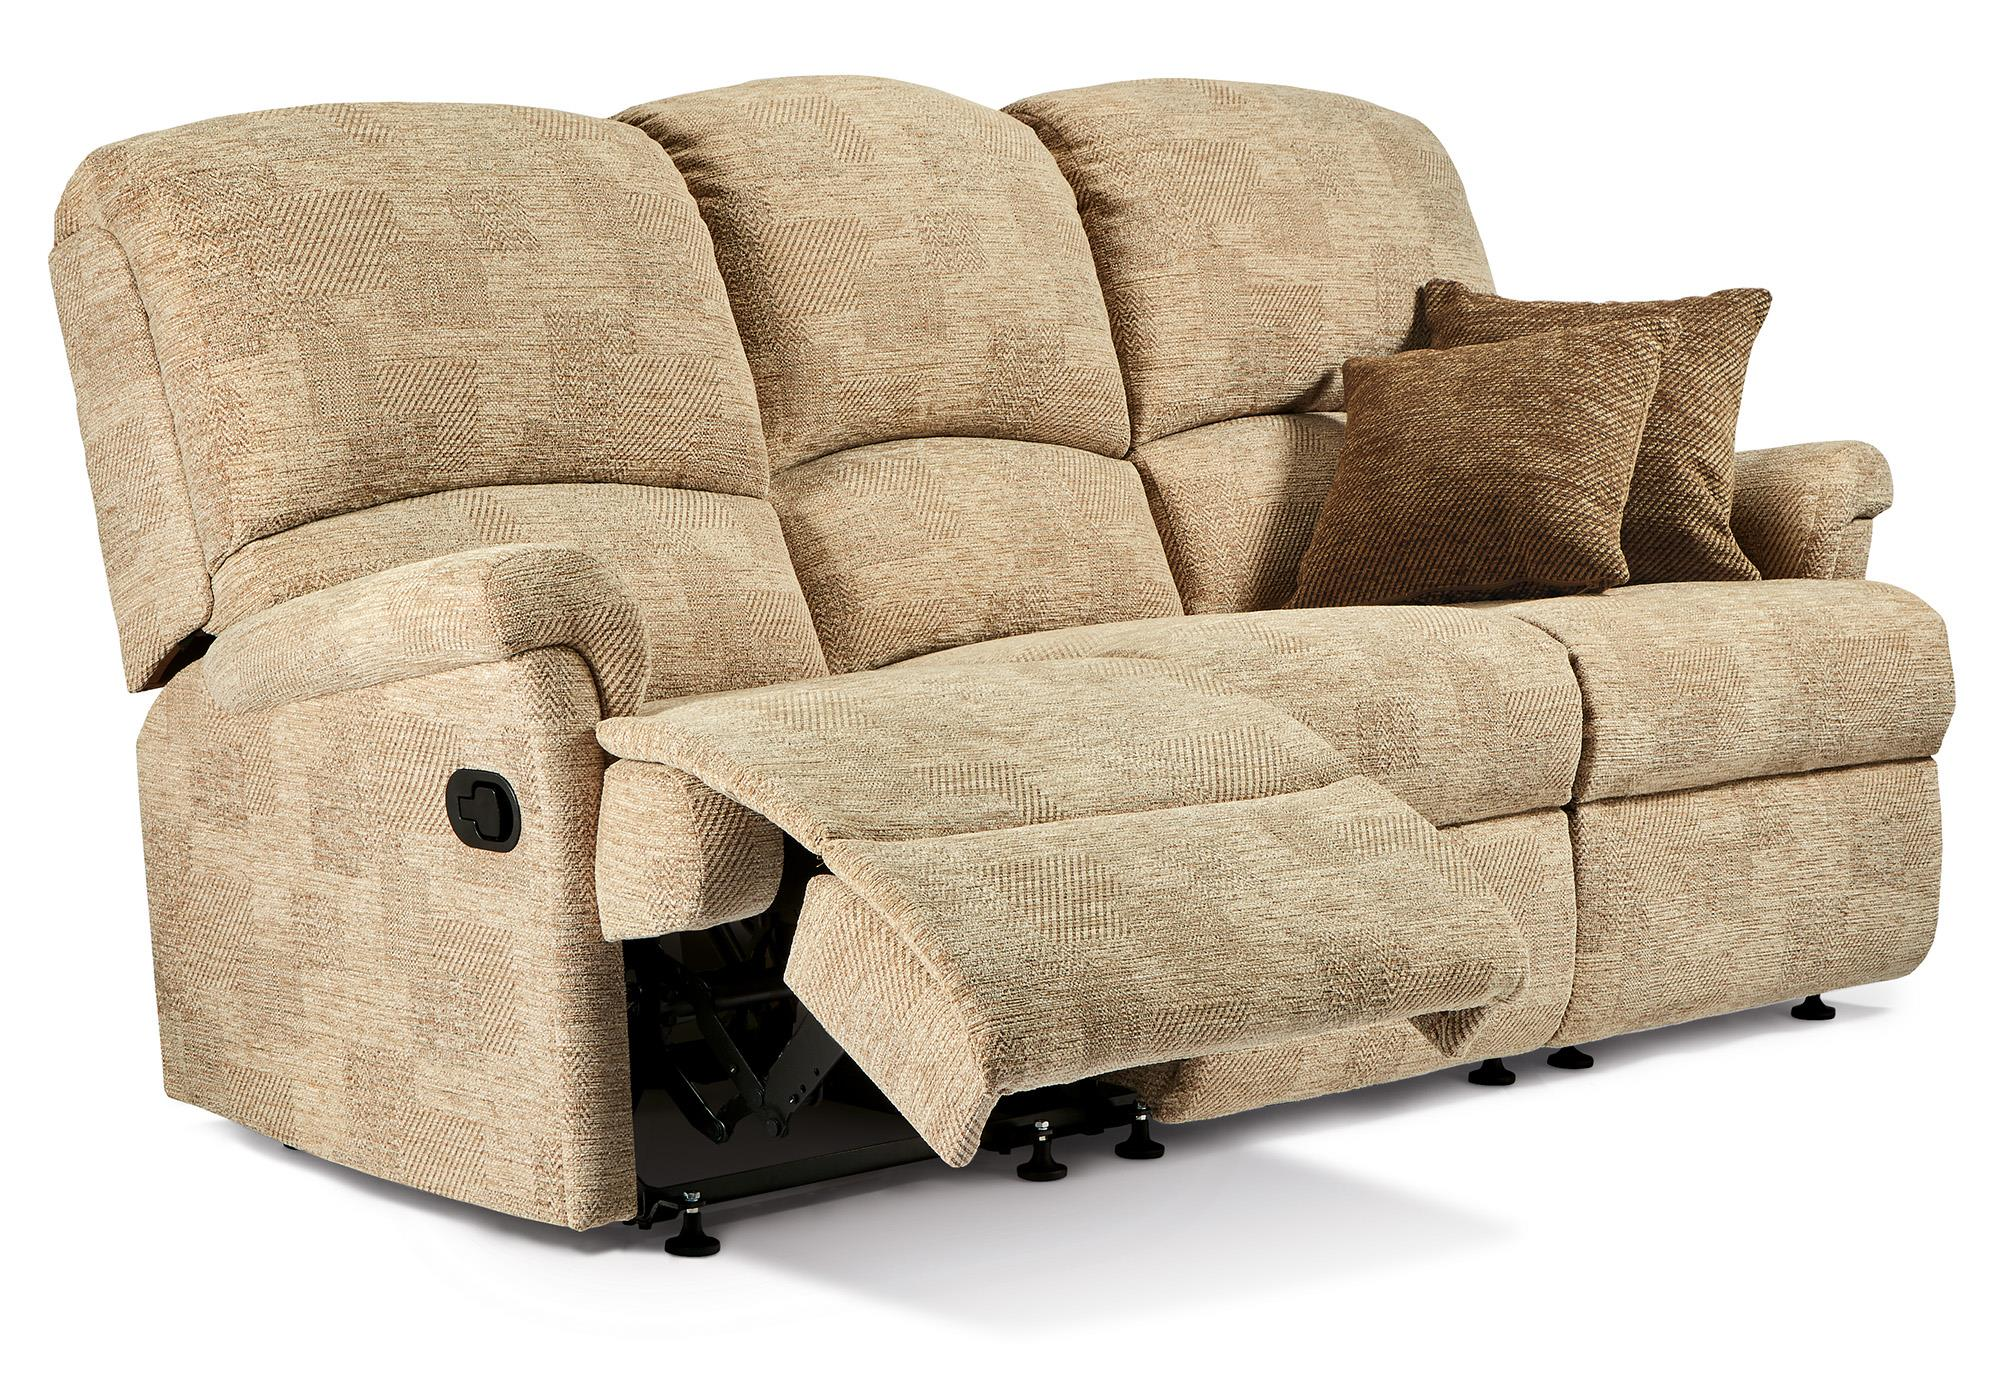 Nevada Leather 3 Str Reclining Settee - by Sherborne   [COPY]